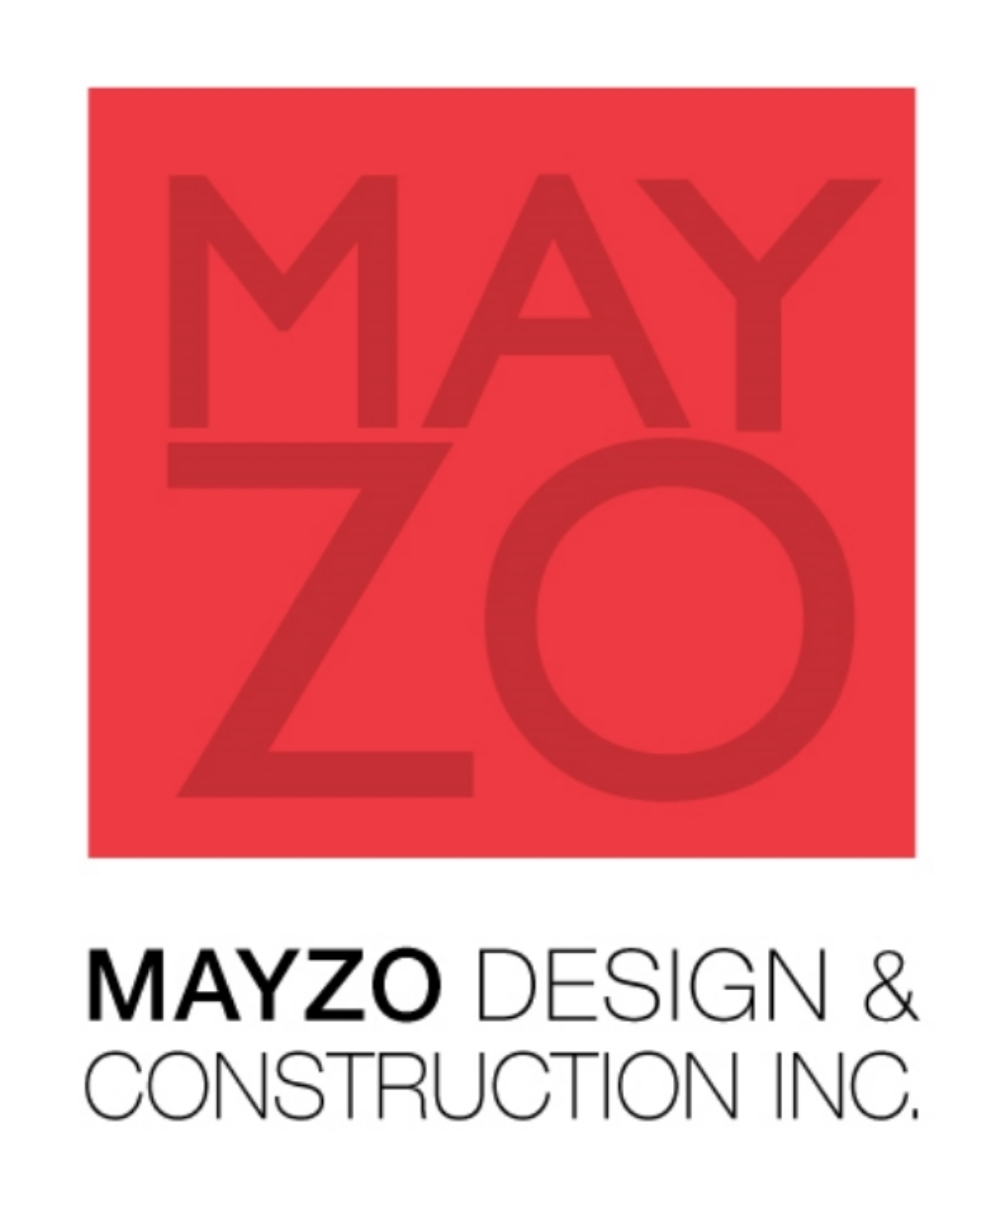 Mayzo Design & Construction